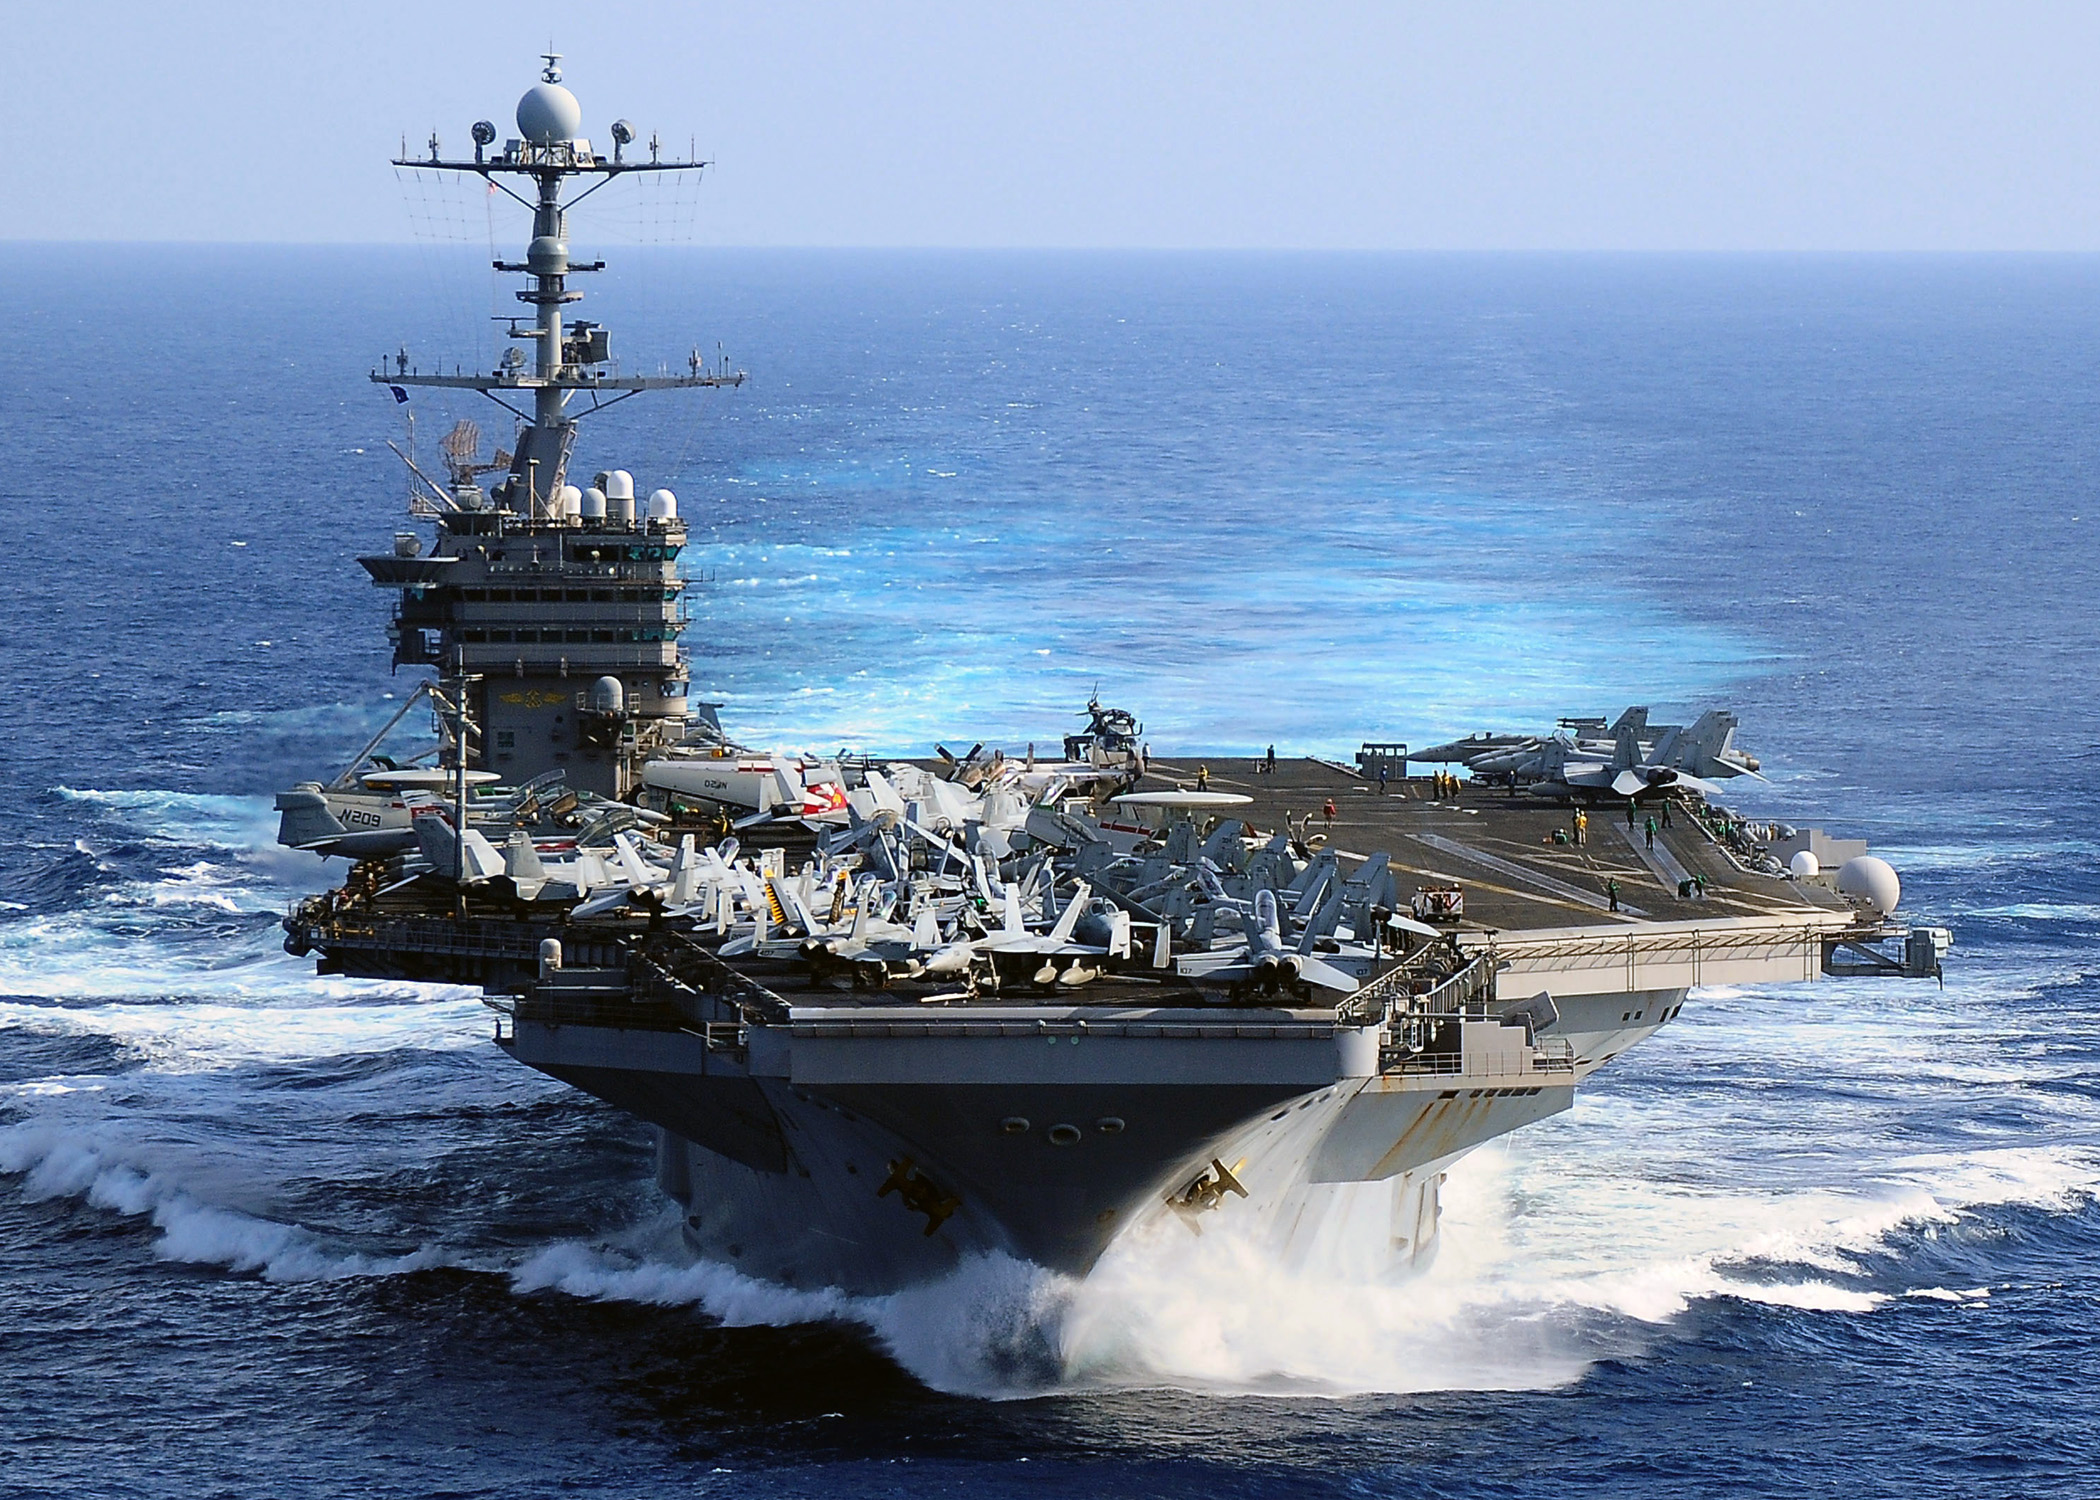 Us navy 091115 n 6720t 106 the aircraft carrier uss george washington